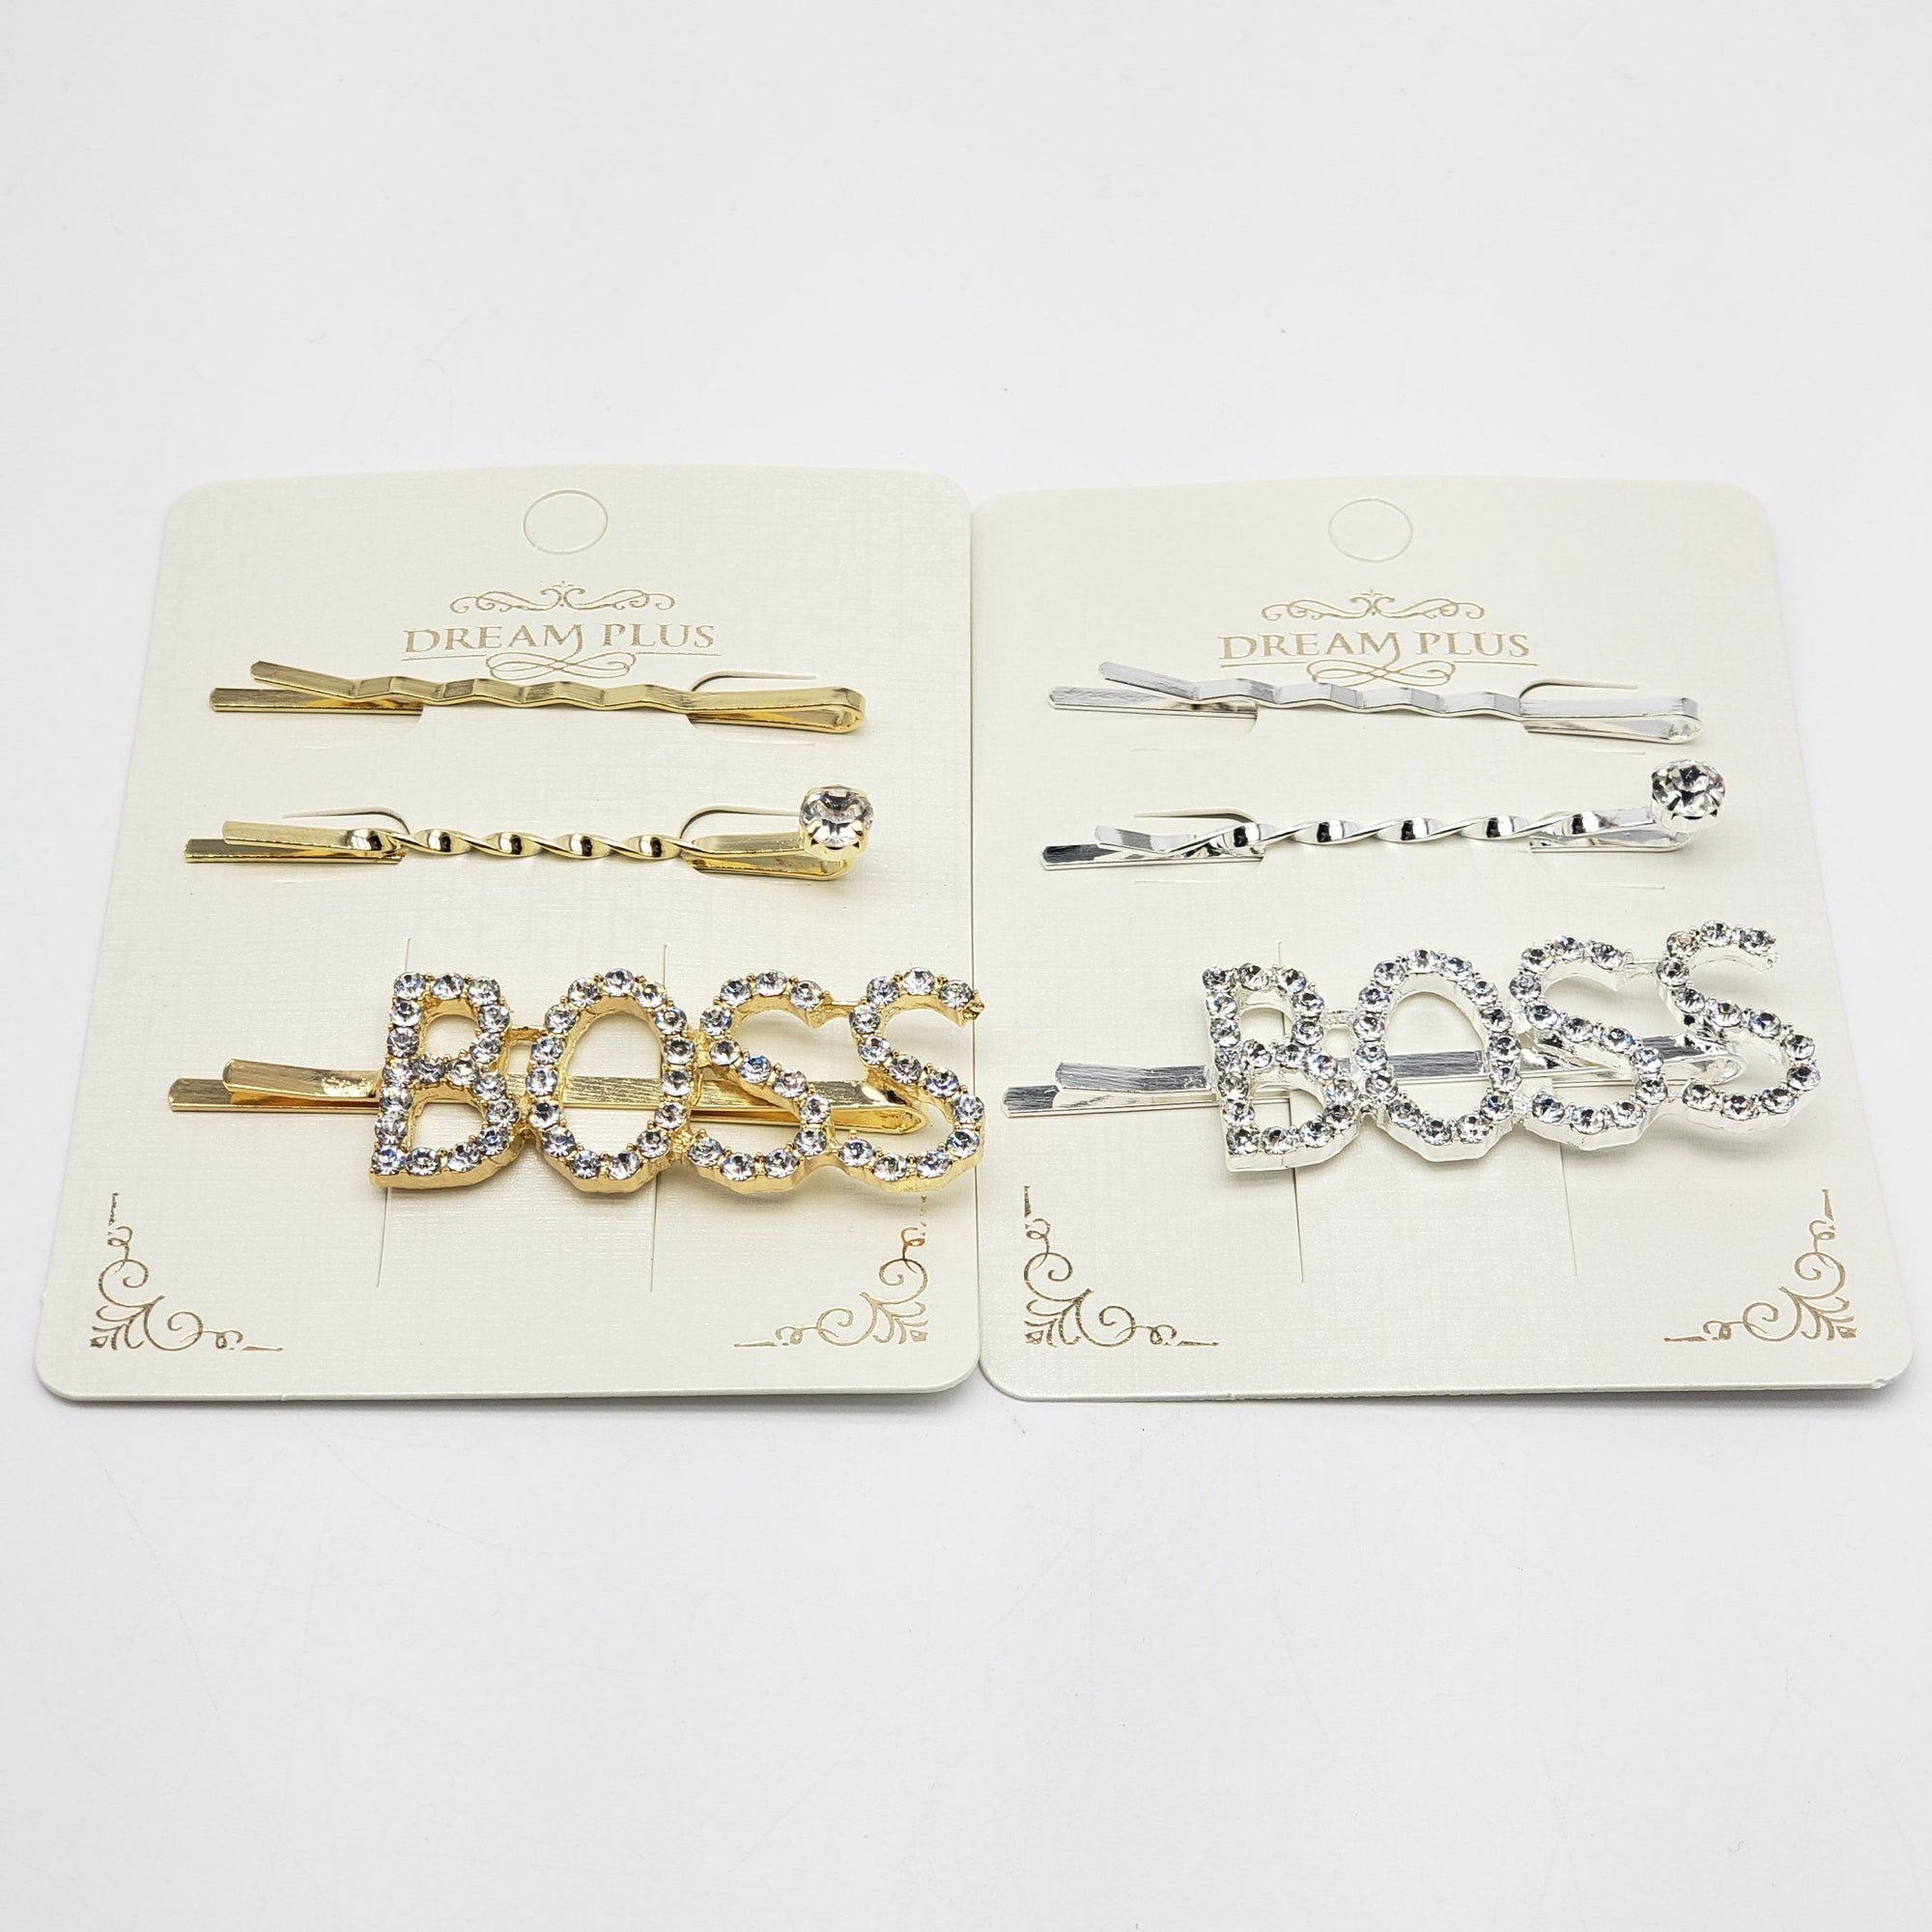 Dream Plus Gold and Silver BOSS Hair Pins #DHP499GS (12PC)